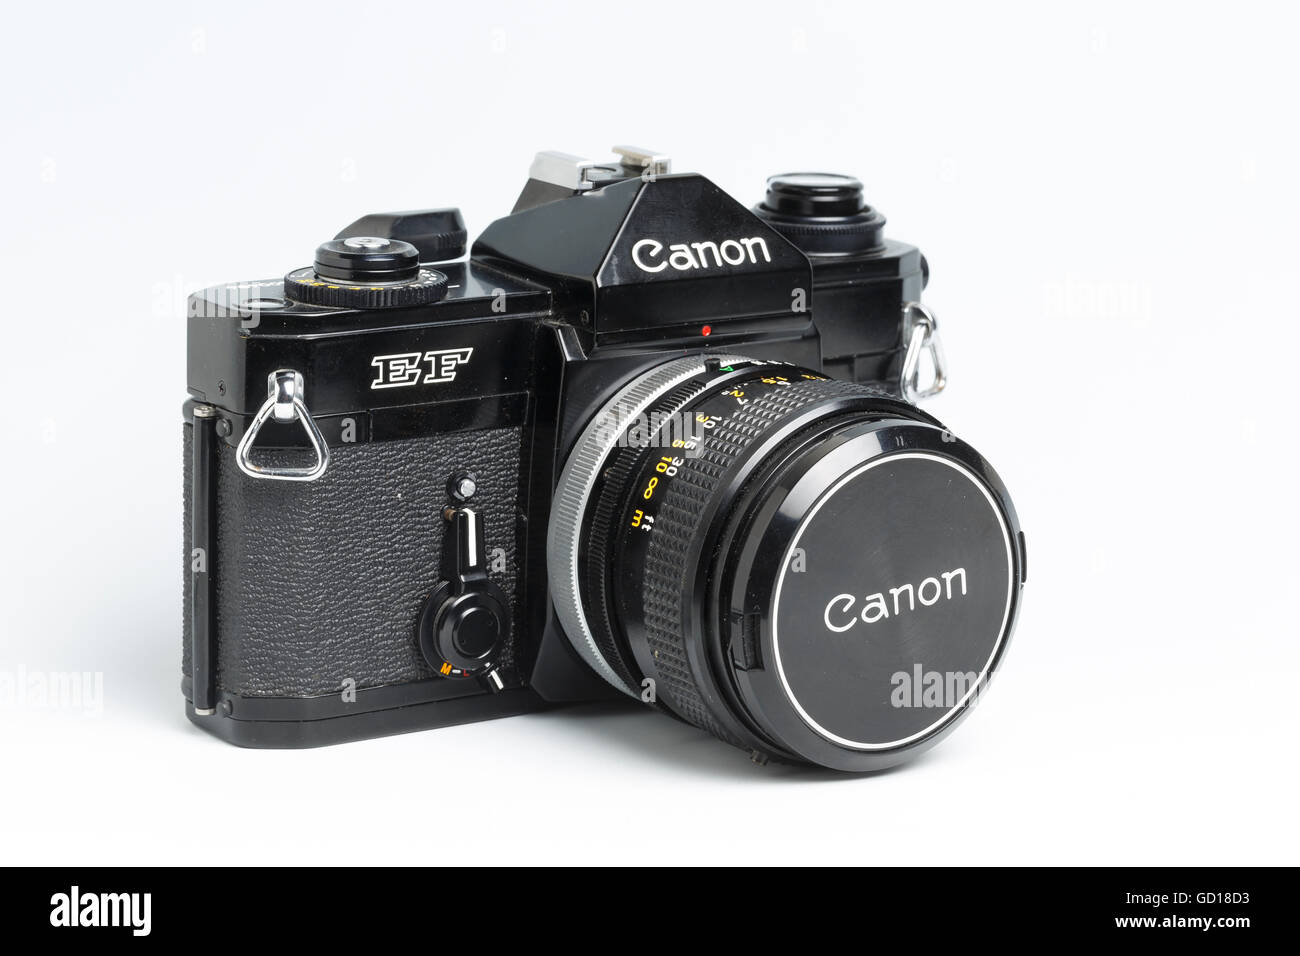 Canon EF SLR film camera, from 1973 - 1978, with 50mm f1.4 FD lens - Stock Image